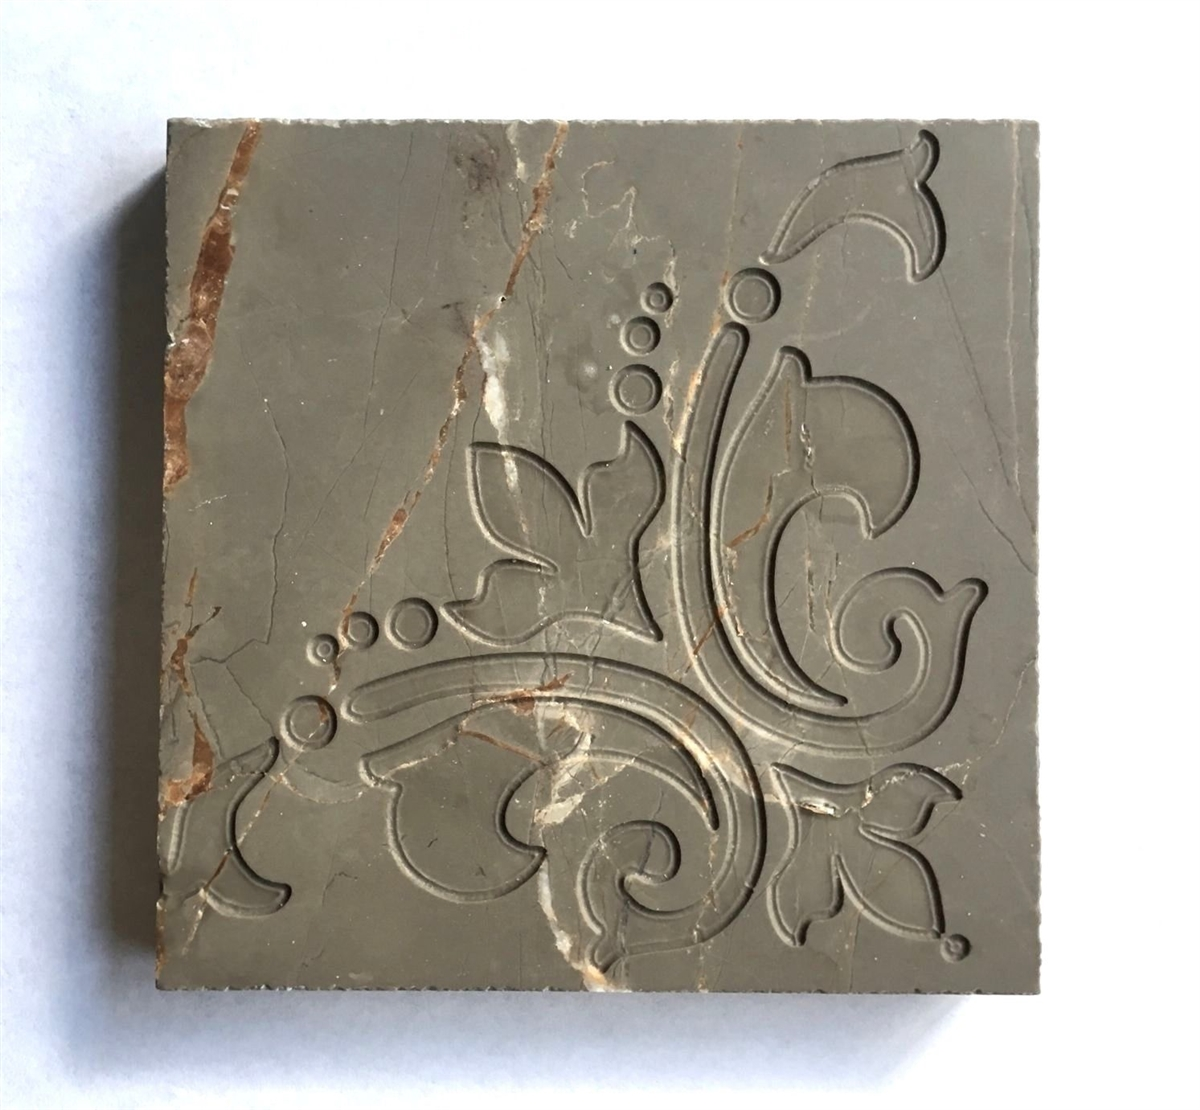 Amber Brown 4x4 Lilly Hand Carved In Marble Tile Decorative